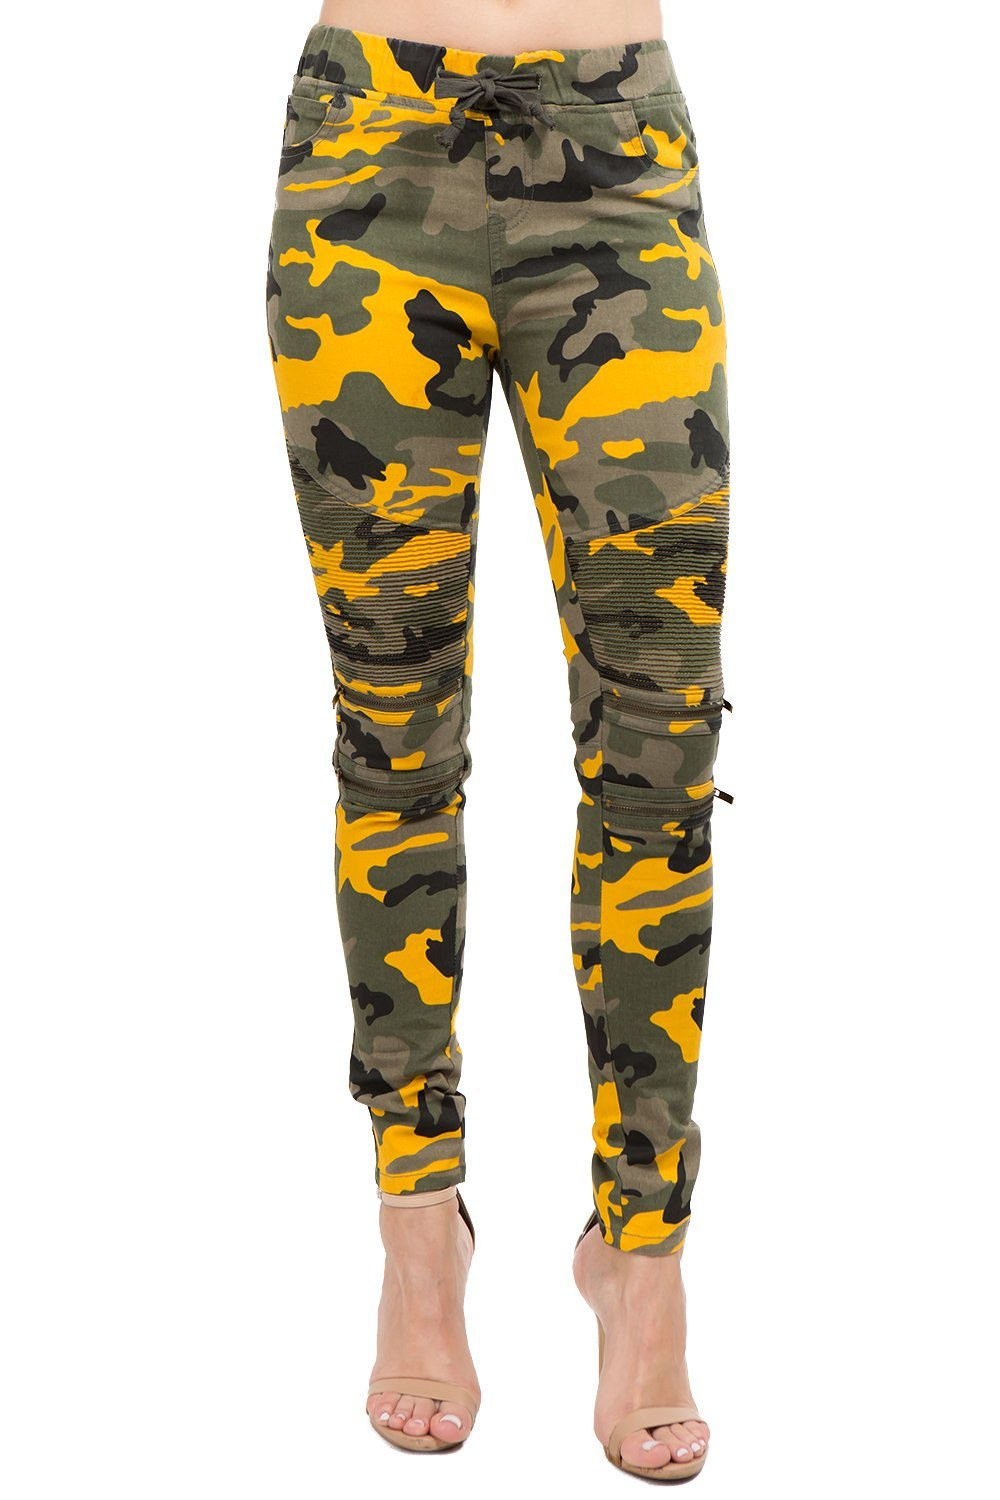 TwiinSisters Women's Camo Print Moto Slim Fitted Draw String Jogger Pants with Comfortable Stretch - Size Small to 3X